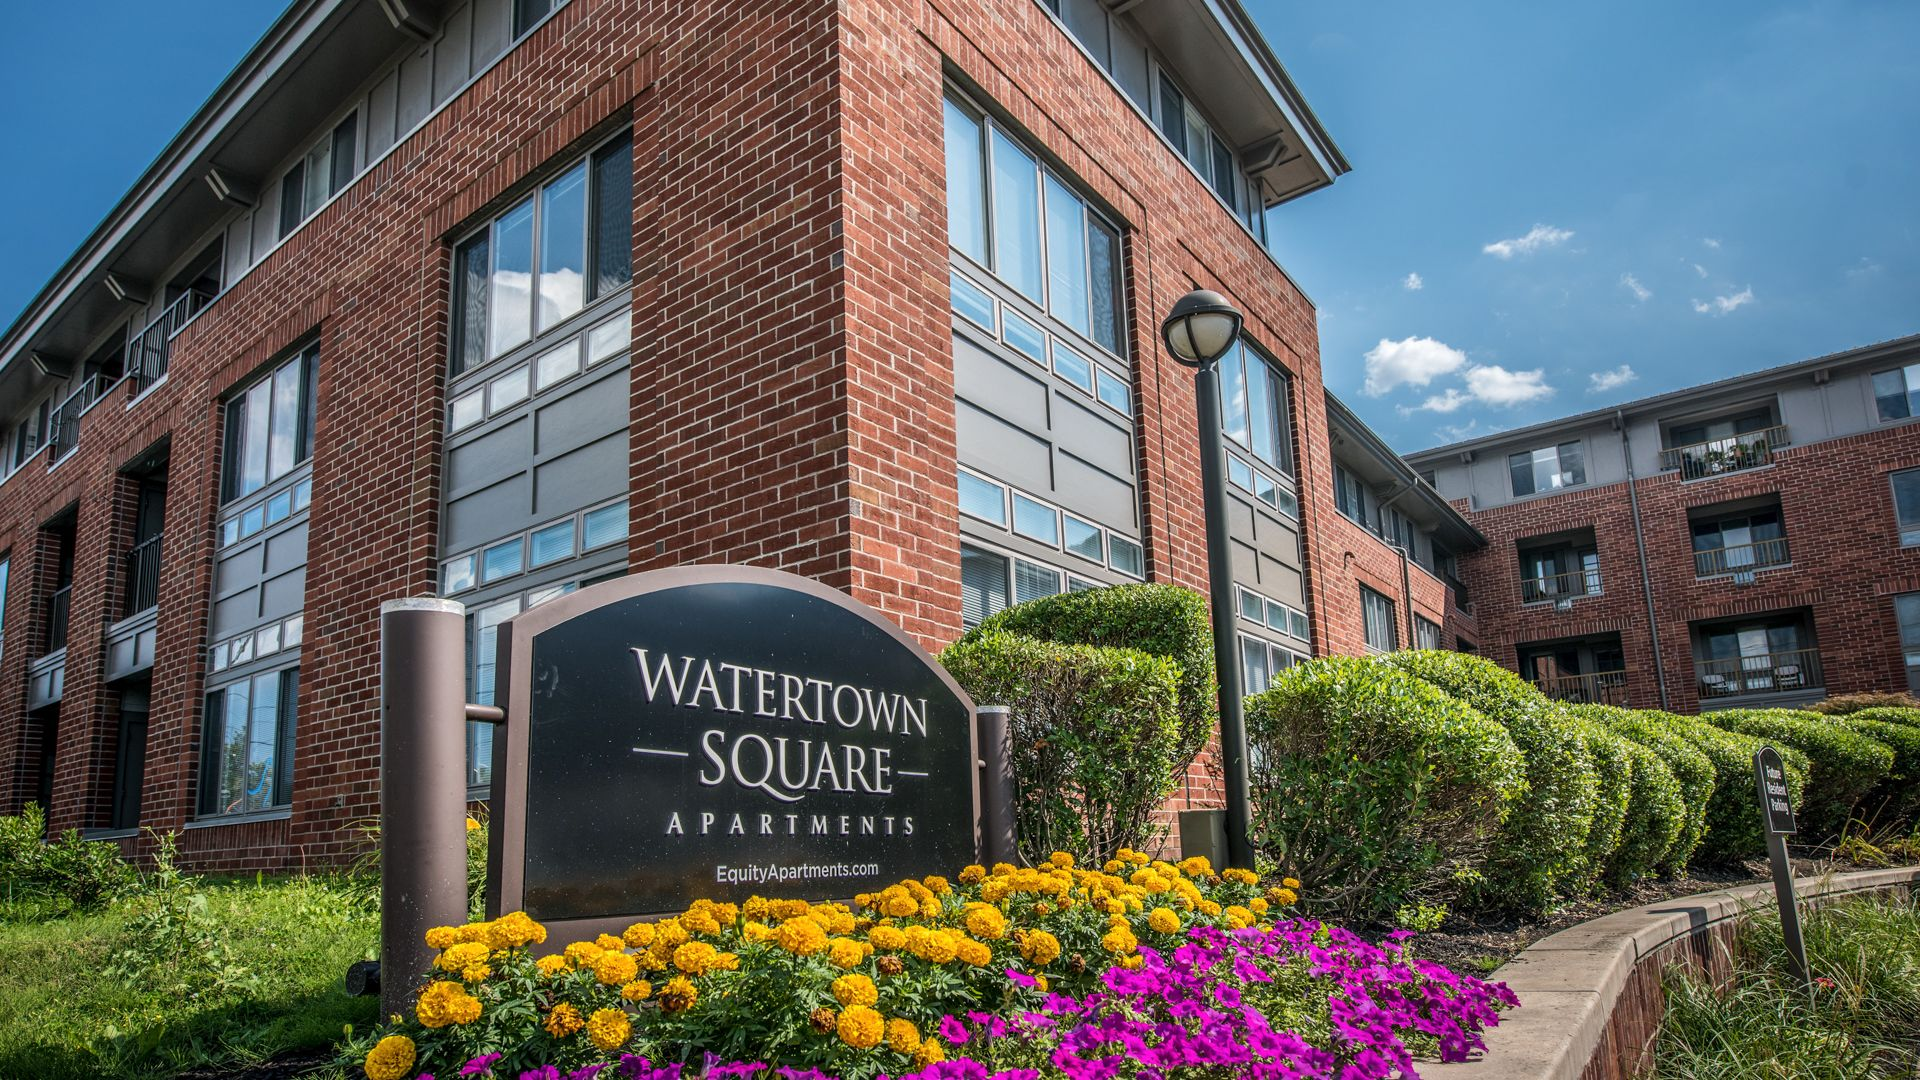 Watertown Square Apartments - Building